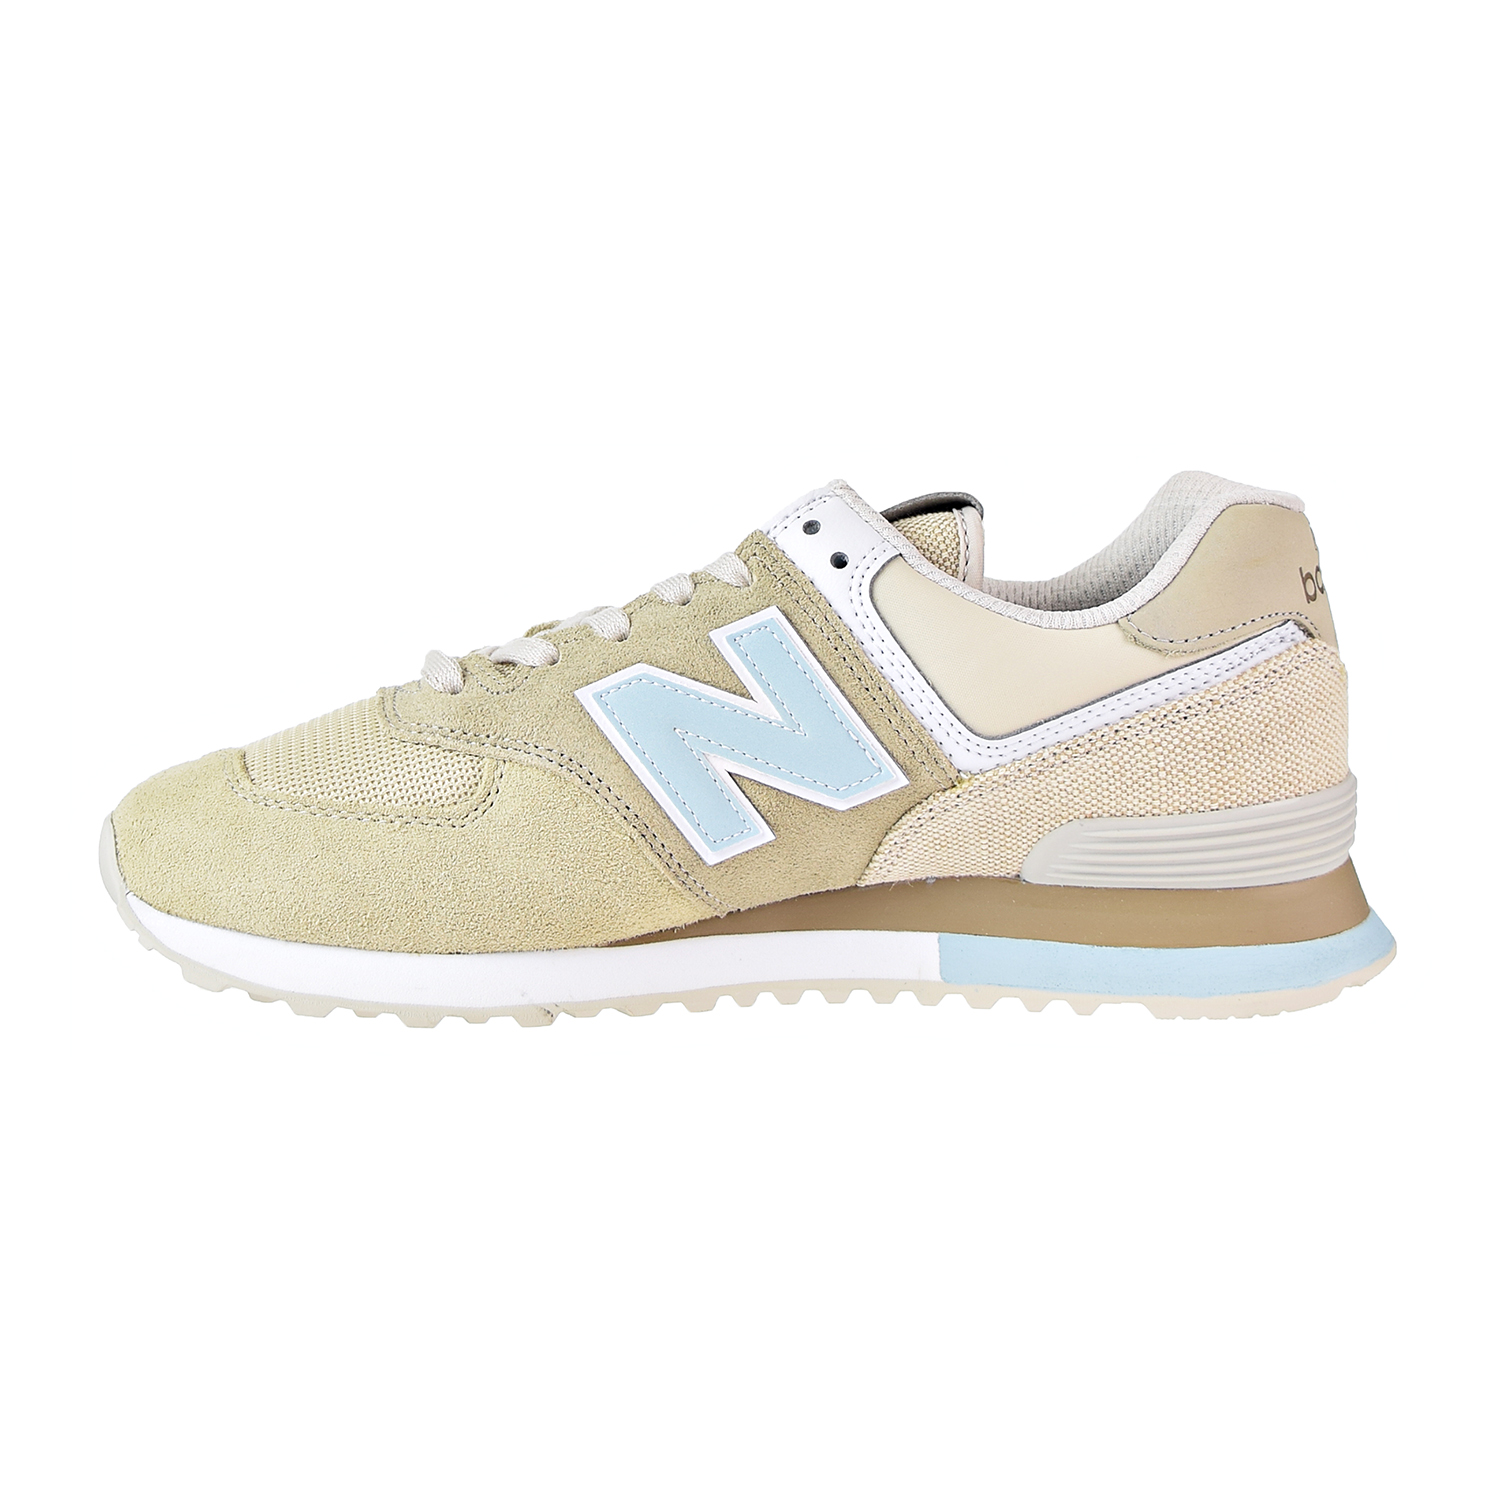 New Balance 574 Retro Surf Men's Shoes Sand/Green ml574-bsb